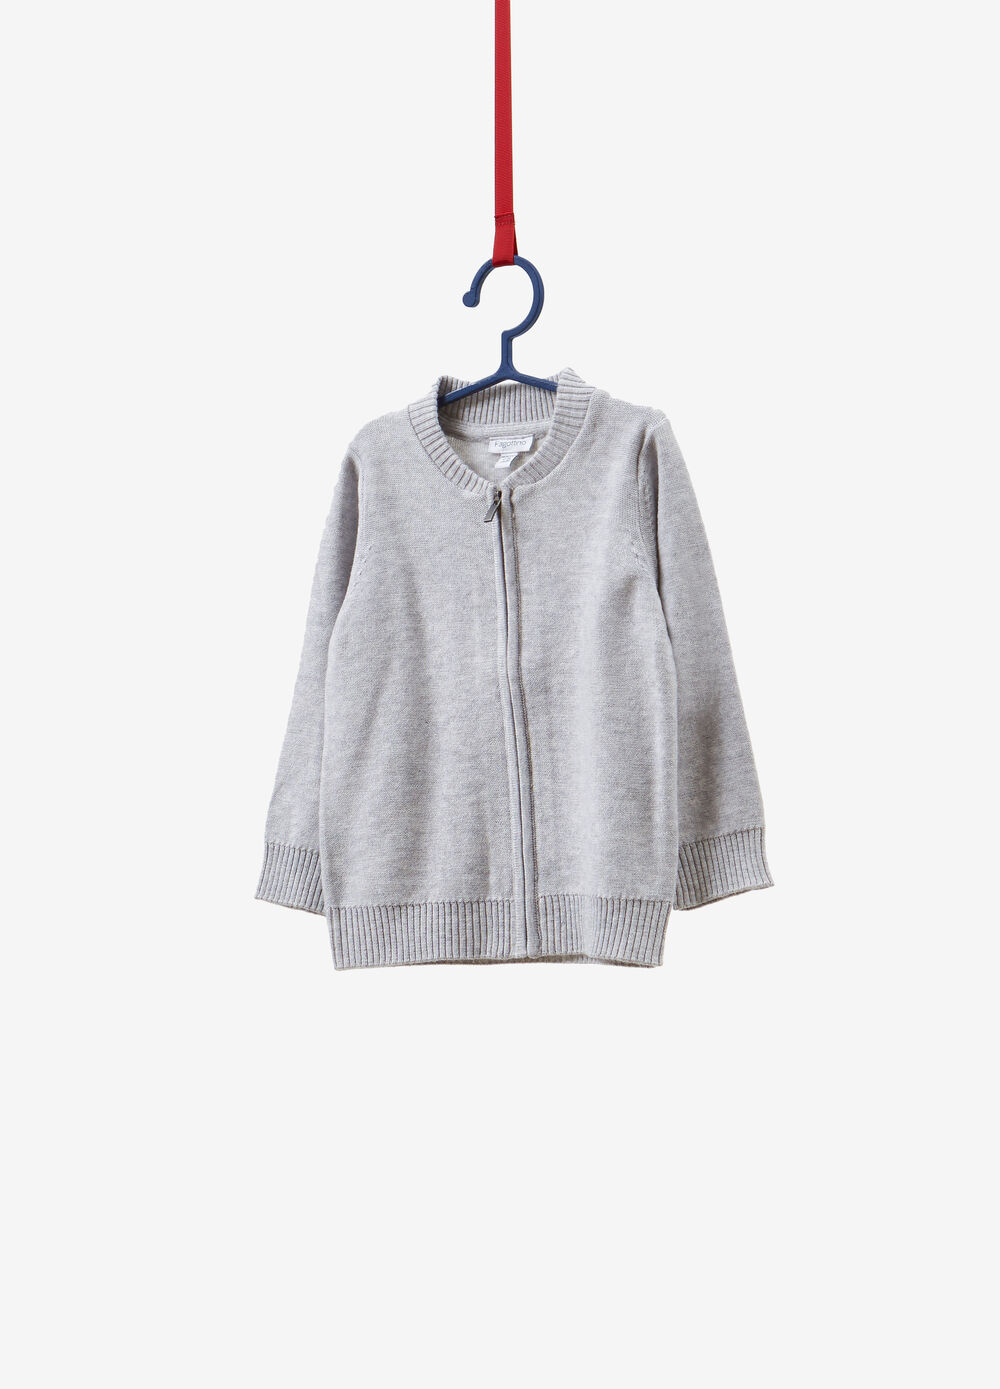 Cotton blend knitted cardigan with zip